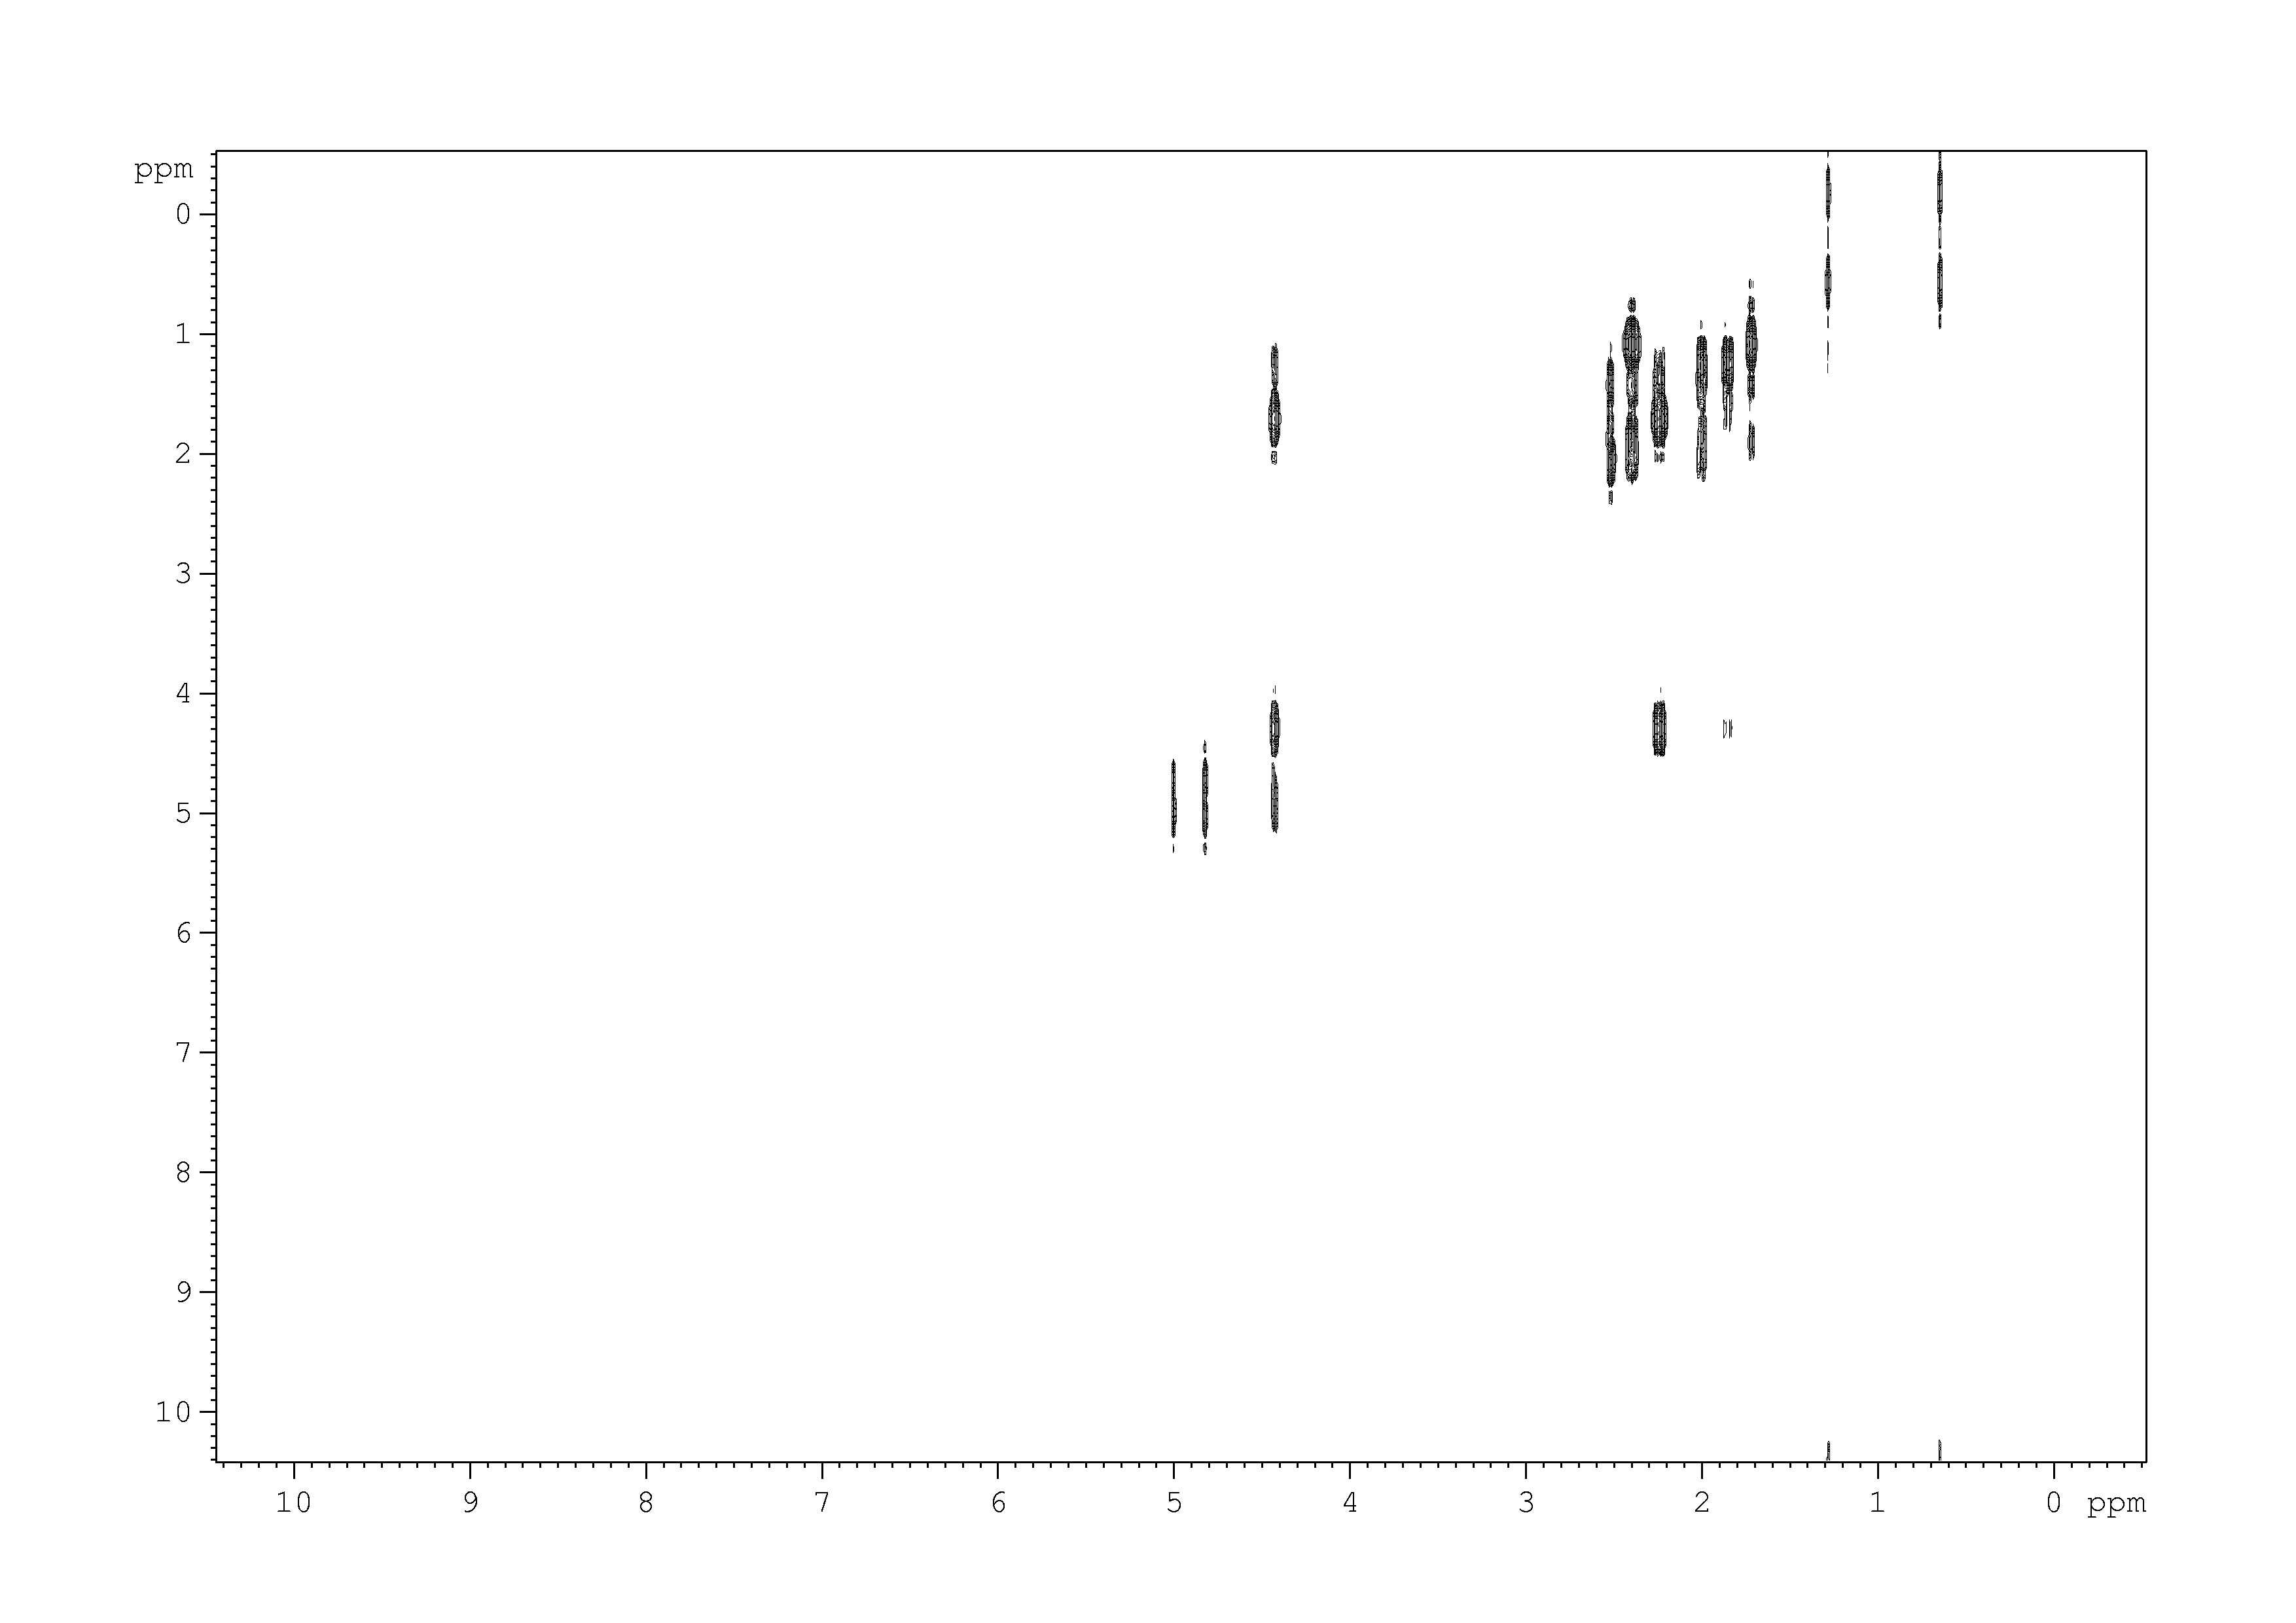 2D [1H,1H]-COSY, n/a spectrum for pinocarveol